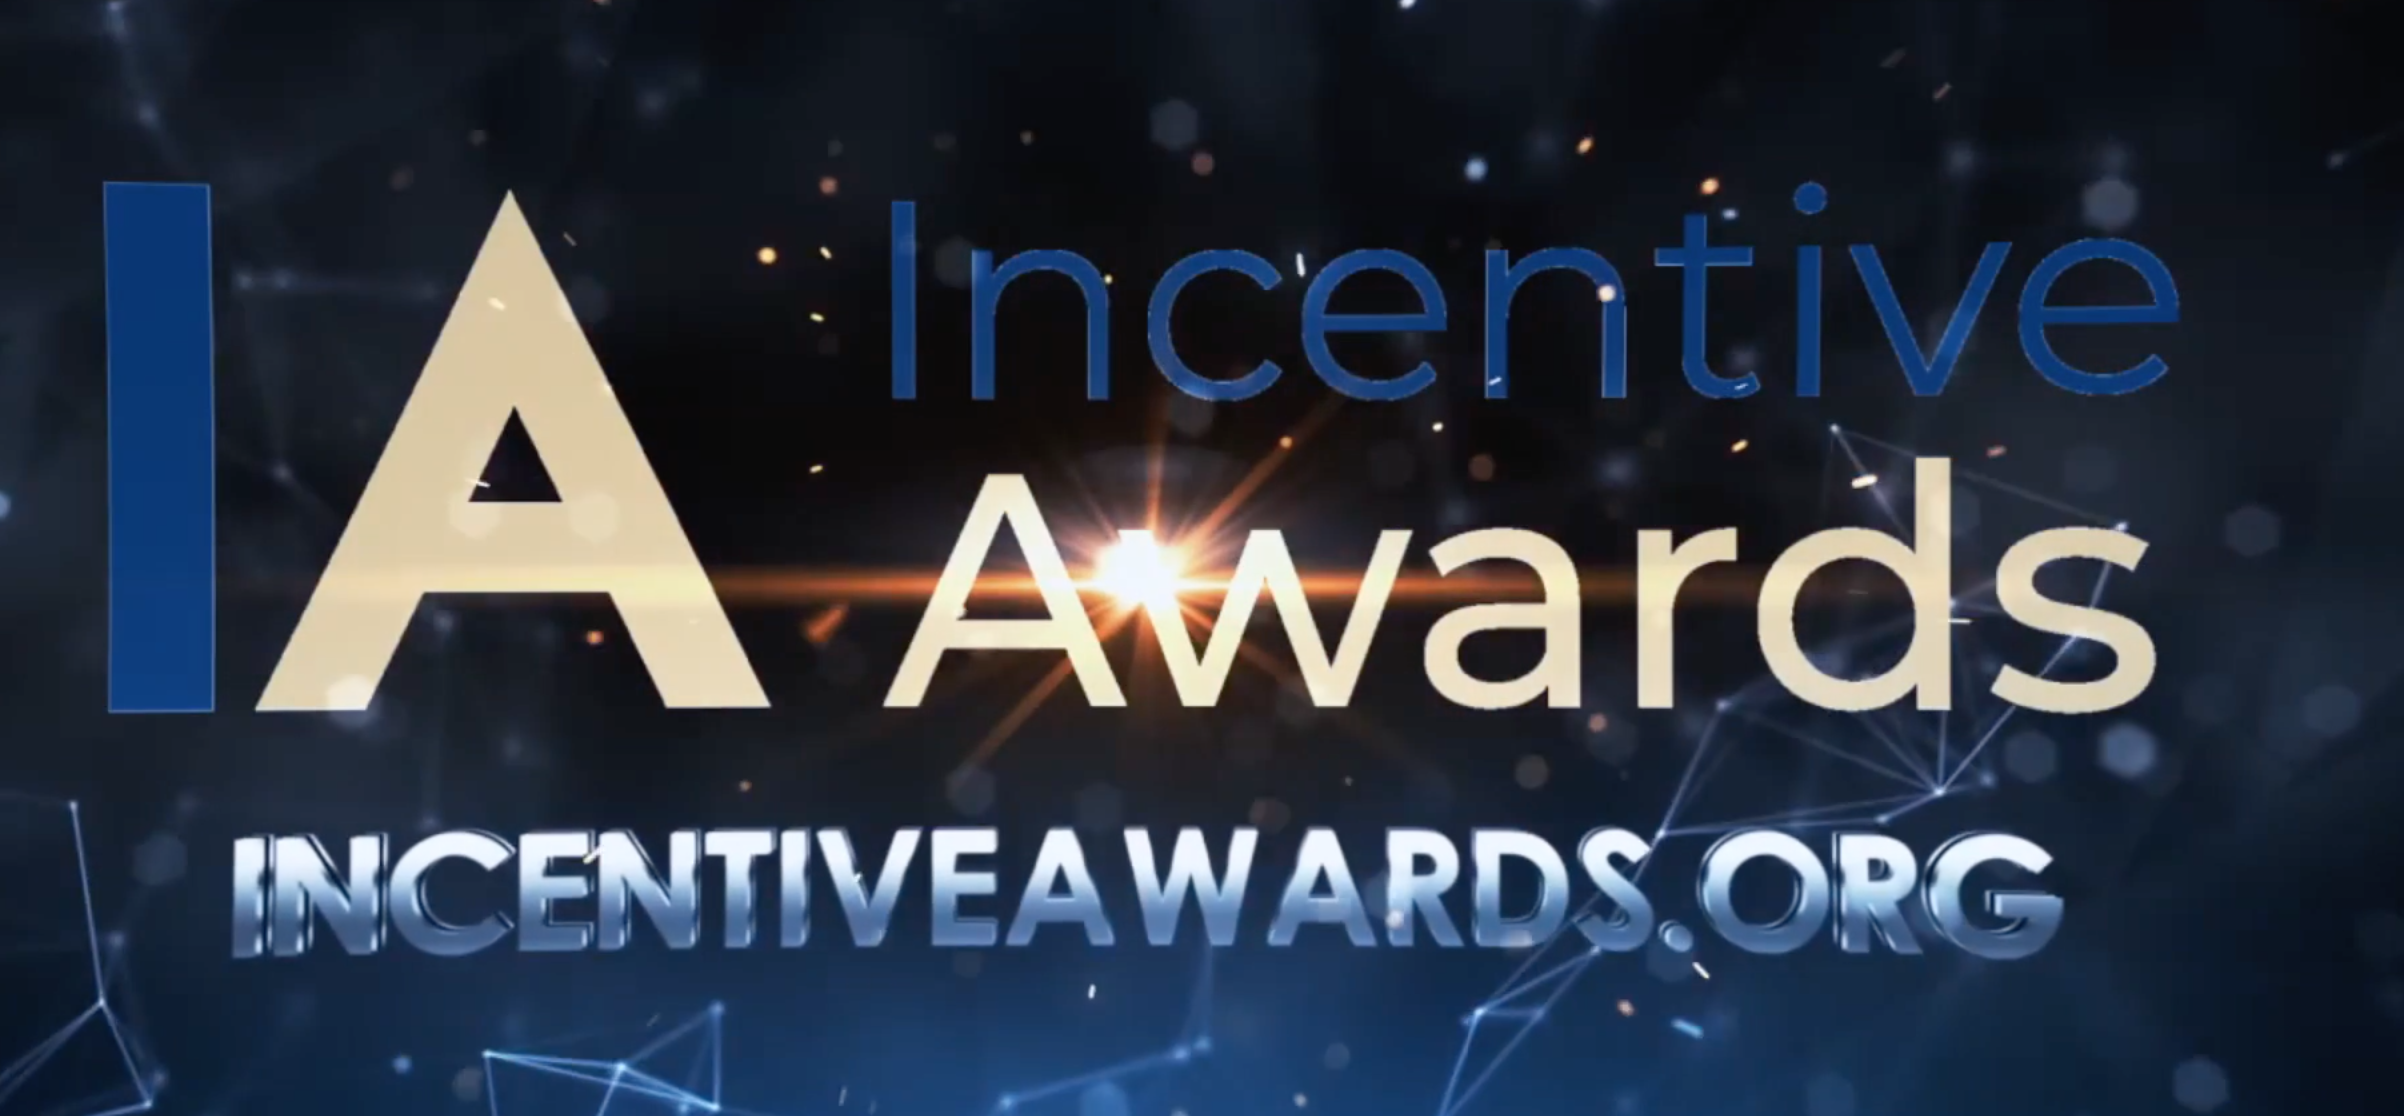 The Incentive Awards return